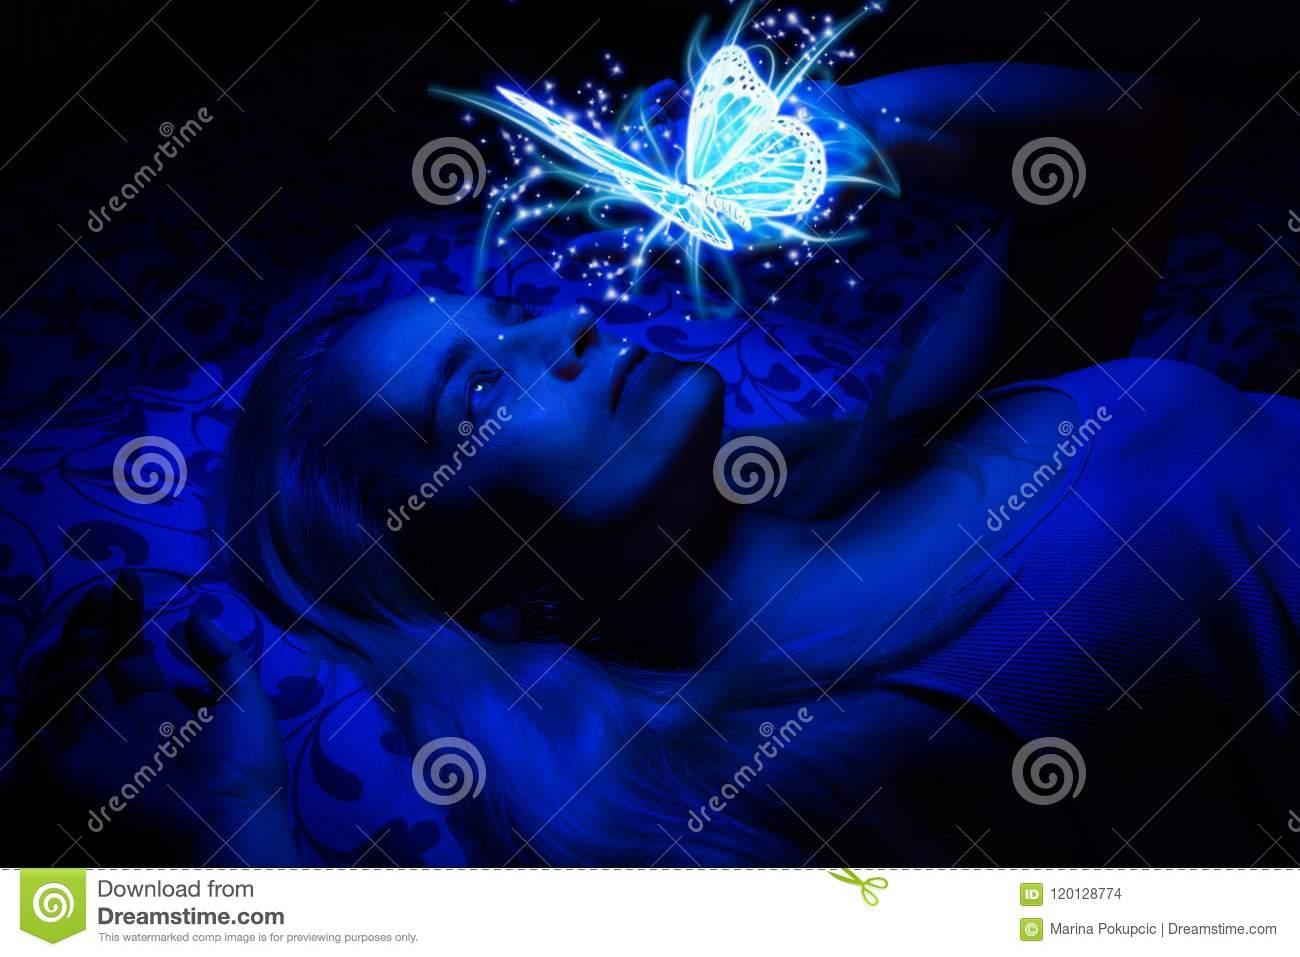 Download Concept Of A Woman Laying In Bed In The Dark, Illuminated With Blue Light From Floating Magical Butterfly Stock Photo - Image of enjoyment, magical: 120128774